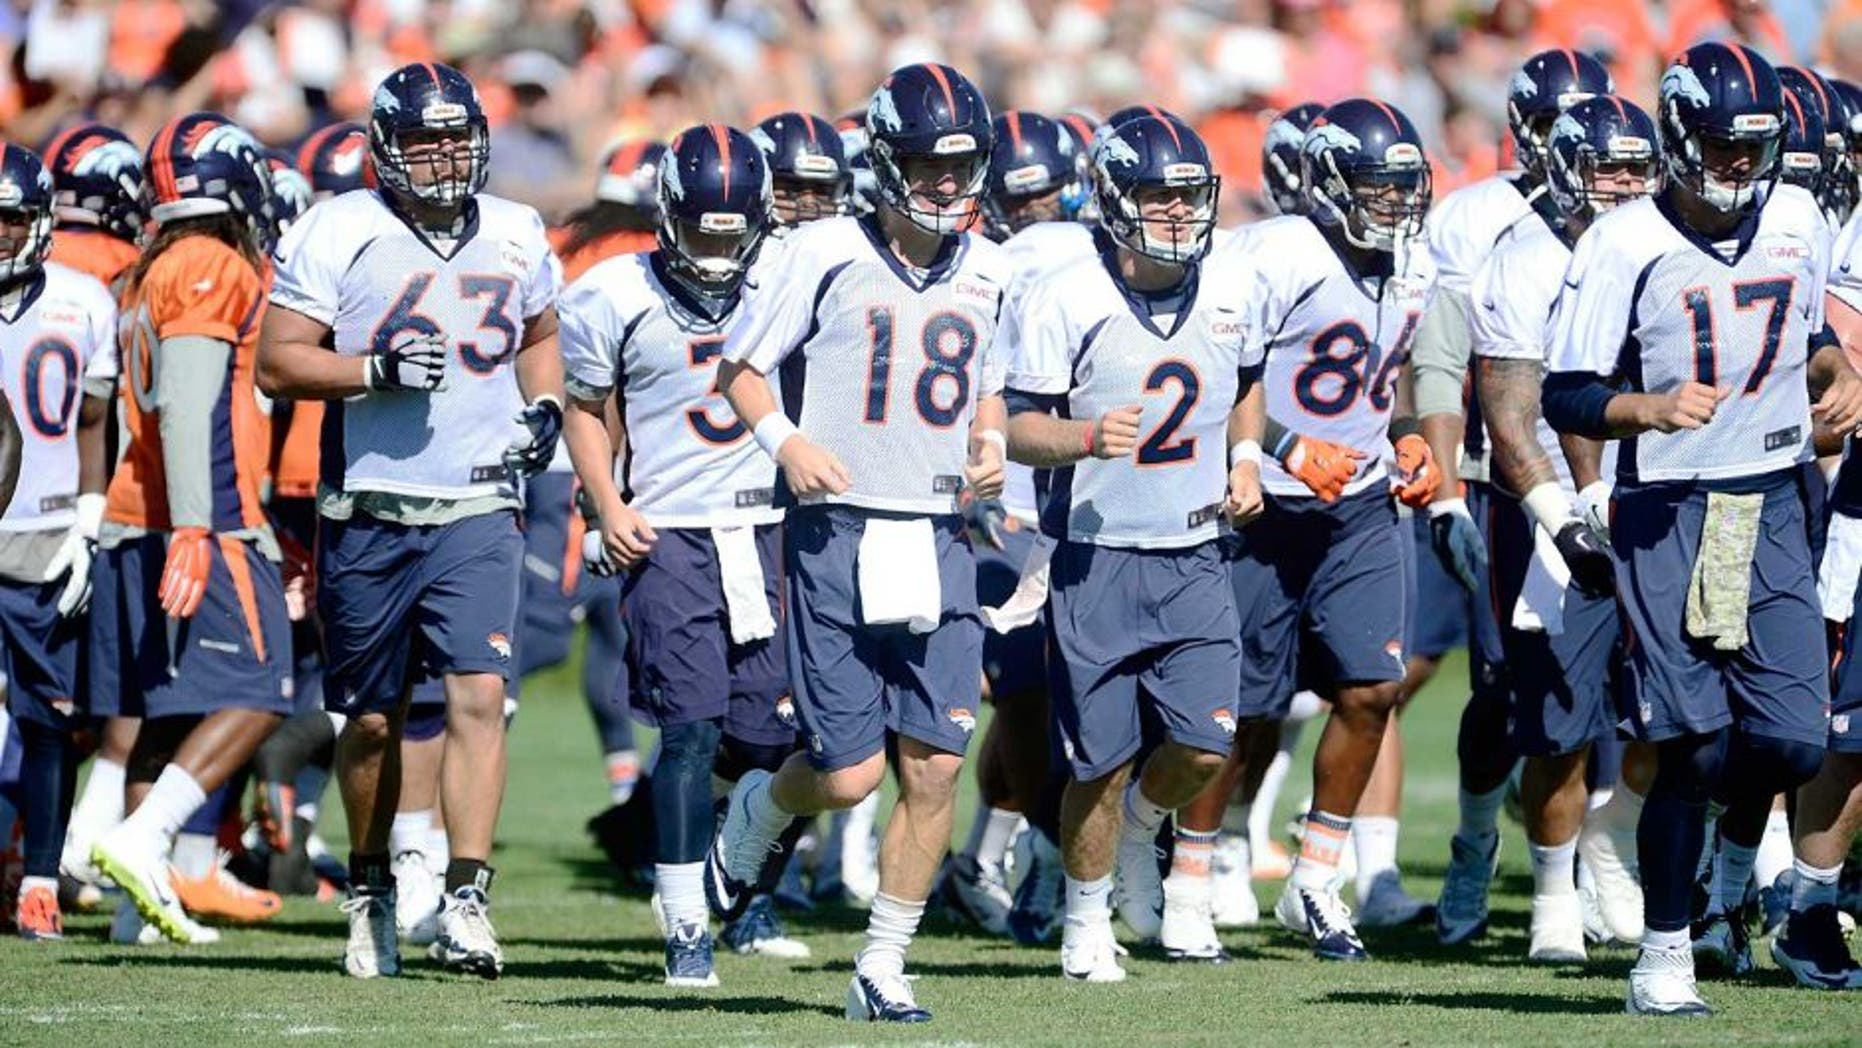 Aug 12, 2015; Englewood, CO, USA; Denver Broncos quarterback Peyton Manning (18), guard Ben Garland (63), quarterback Zac Dysert (2) and quarterback Brock Osweiler (17) warm up during training camp activities at the UCHealth Training Center. Mandatory Credit: Ron Chenoy-USA TODAY Sports